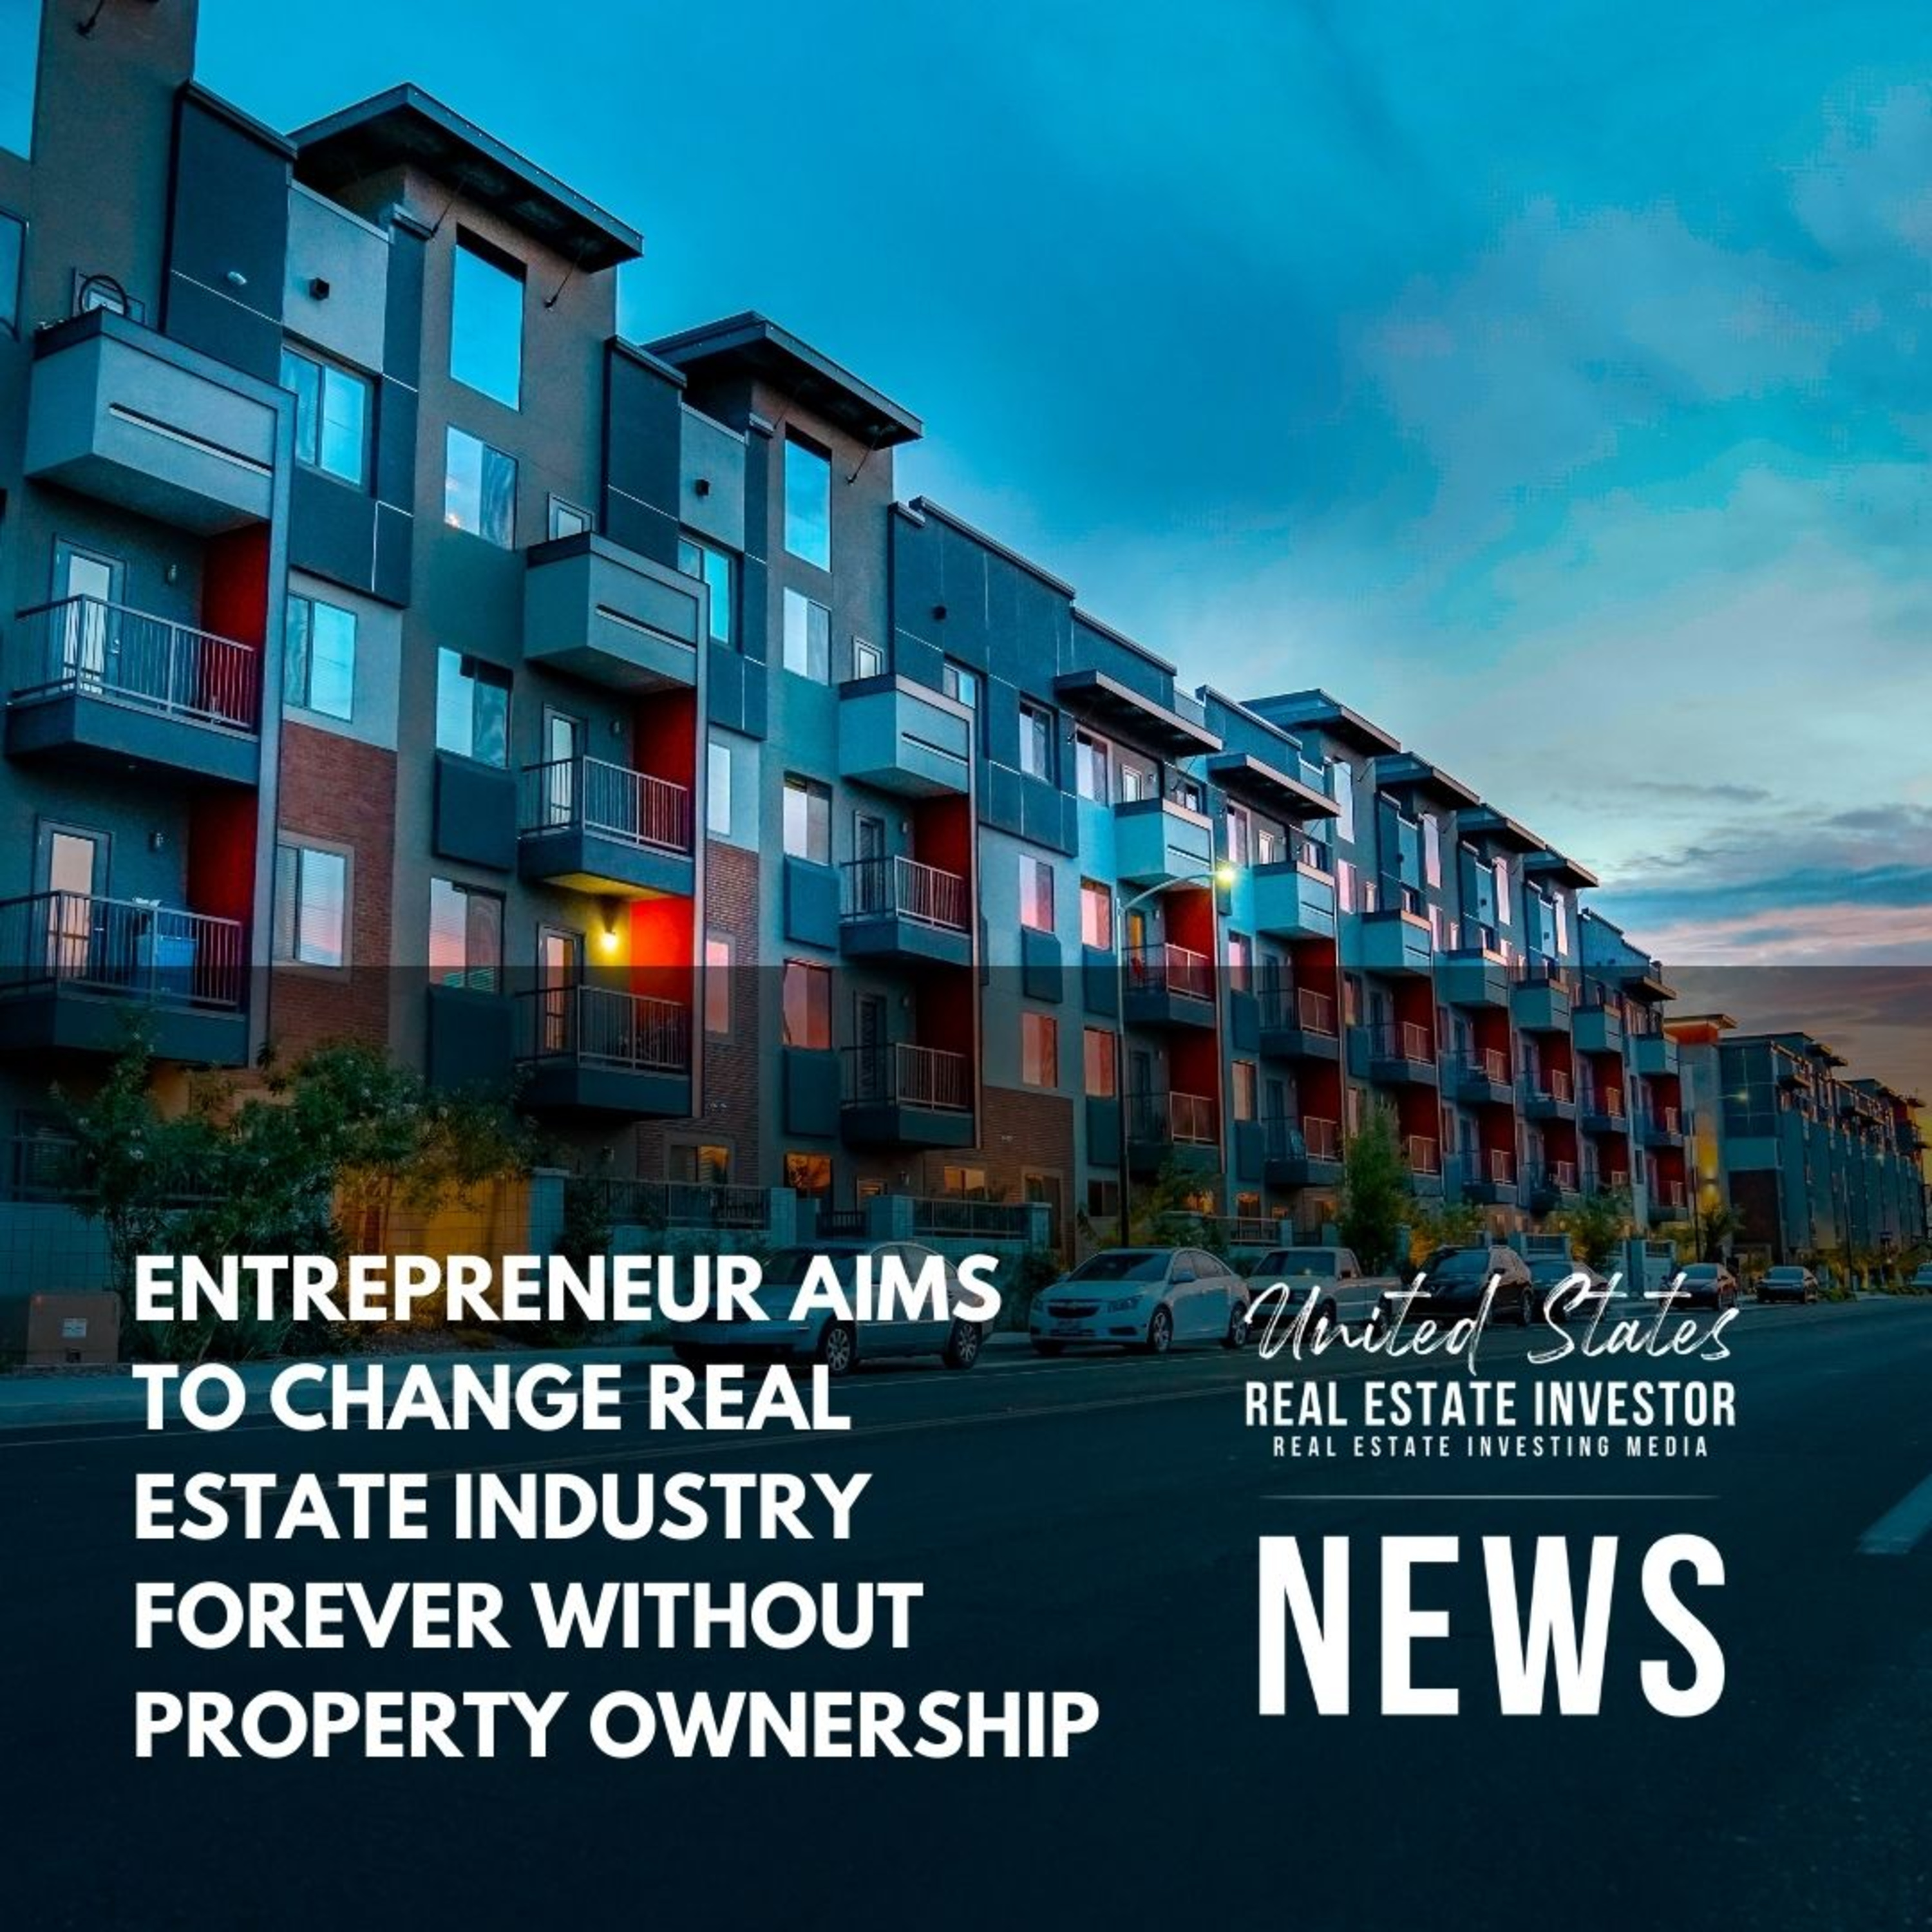 Entrepreneur Aims To Change Real Estate Industry Forever Without Property Ownership